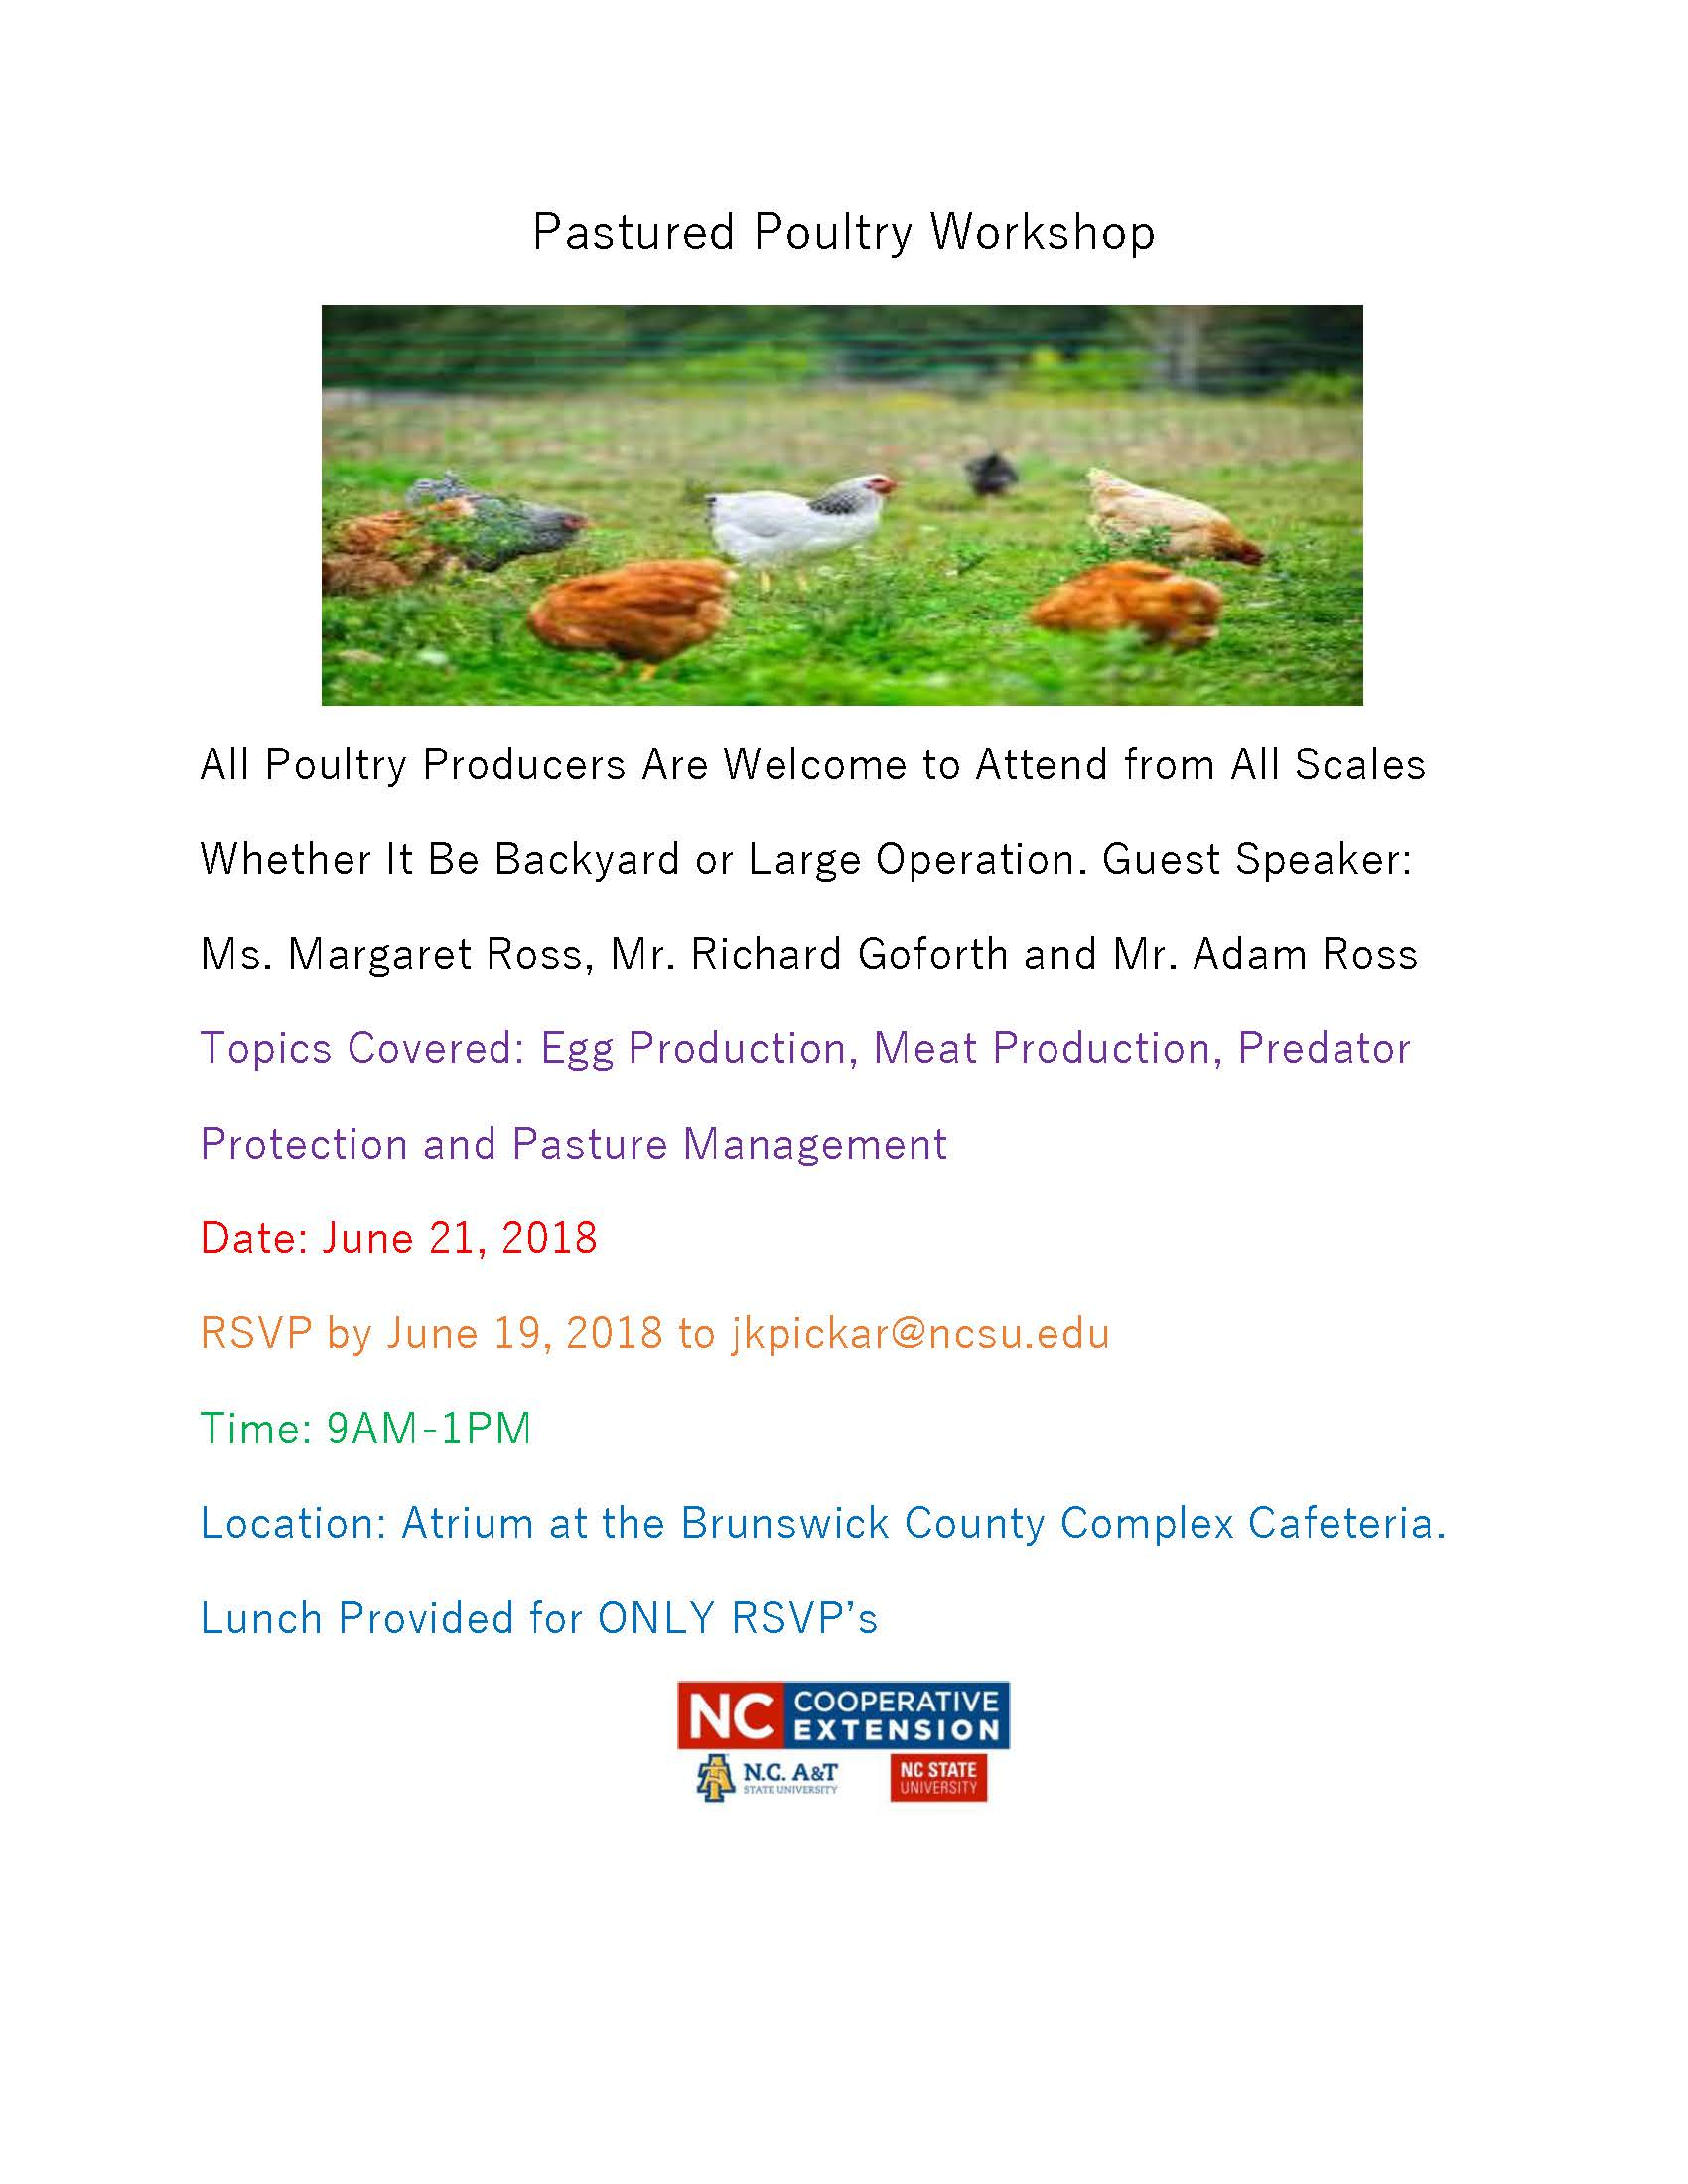 Pasteurized Poultry Workshop flyer image